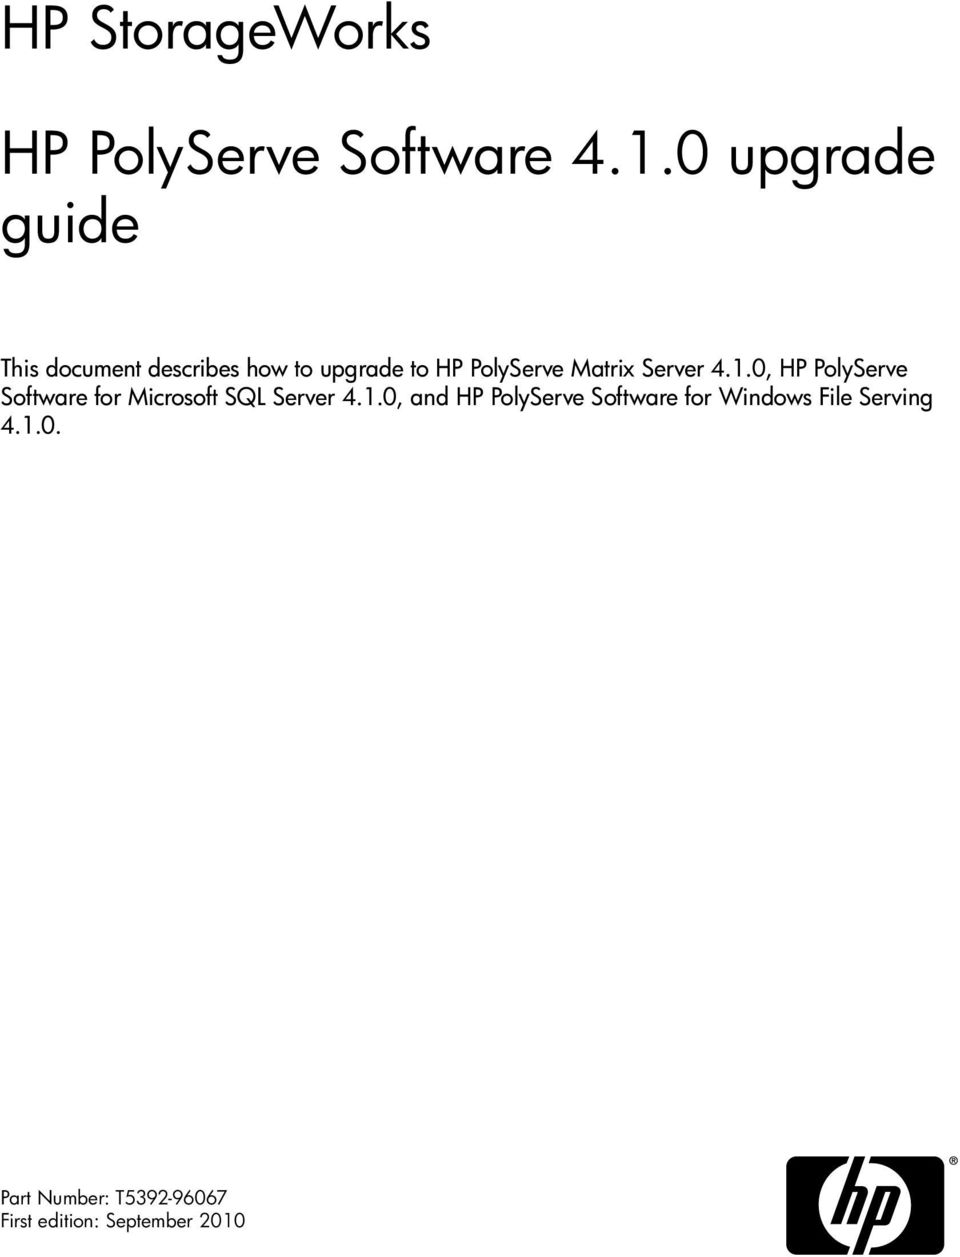 Matrix Server 4.1.0, HP PolyServe Software for Microsoft SQL Server 4.1.0, and HP PolyServe Software for Windows File Serving 4.